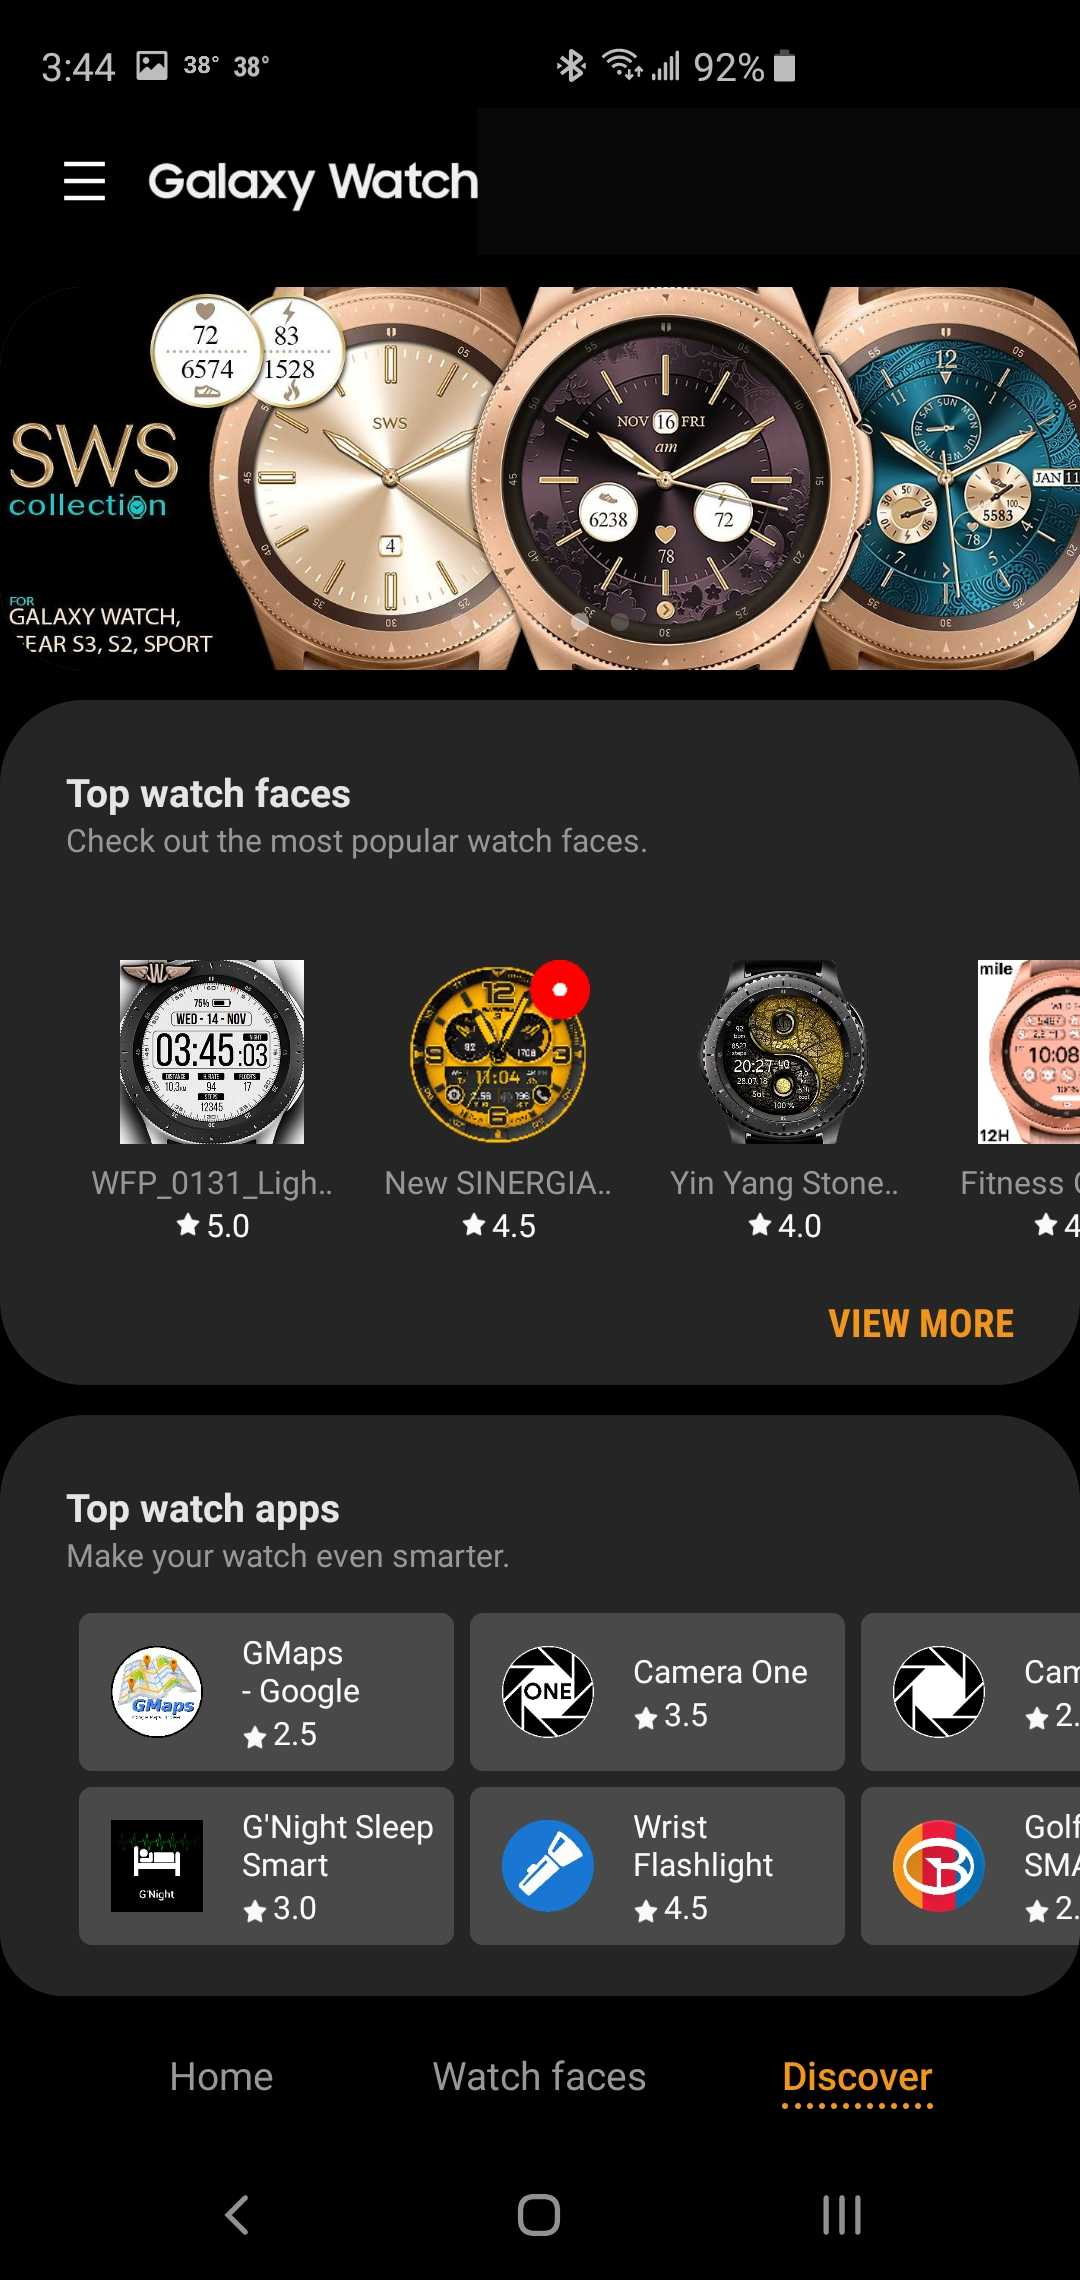 Samsung pushes One UI to its Galaxy Wearable app - Android Police